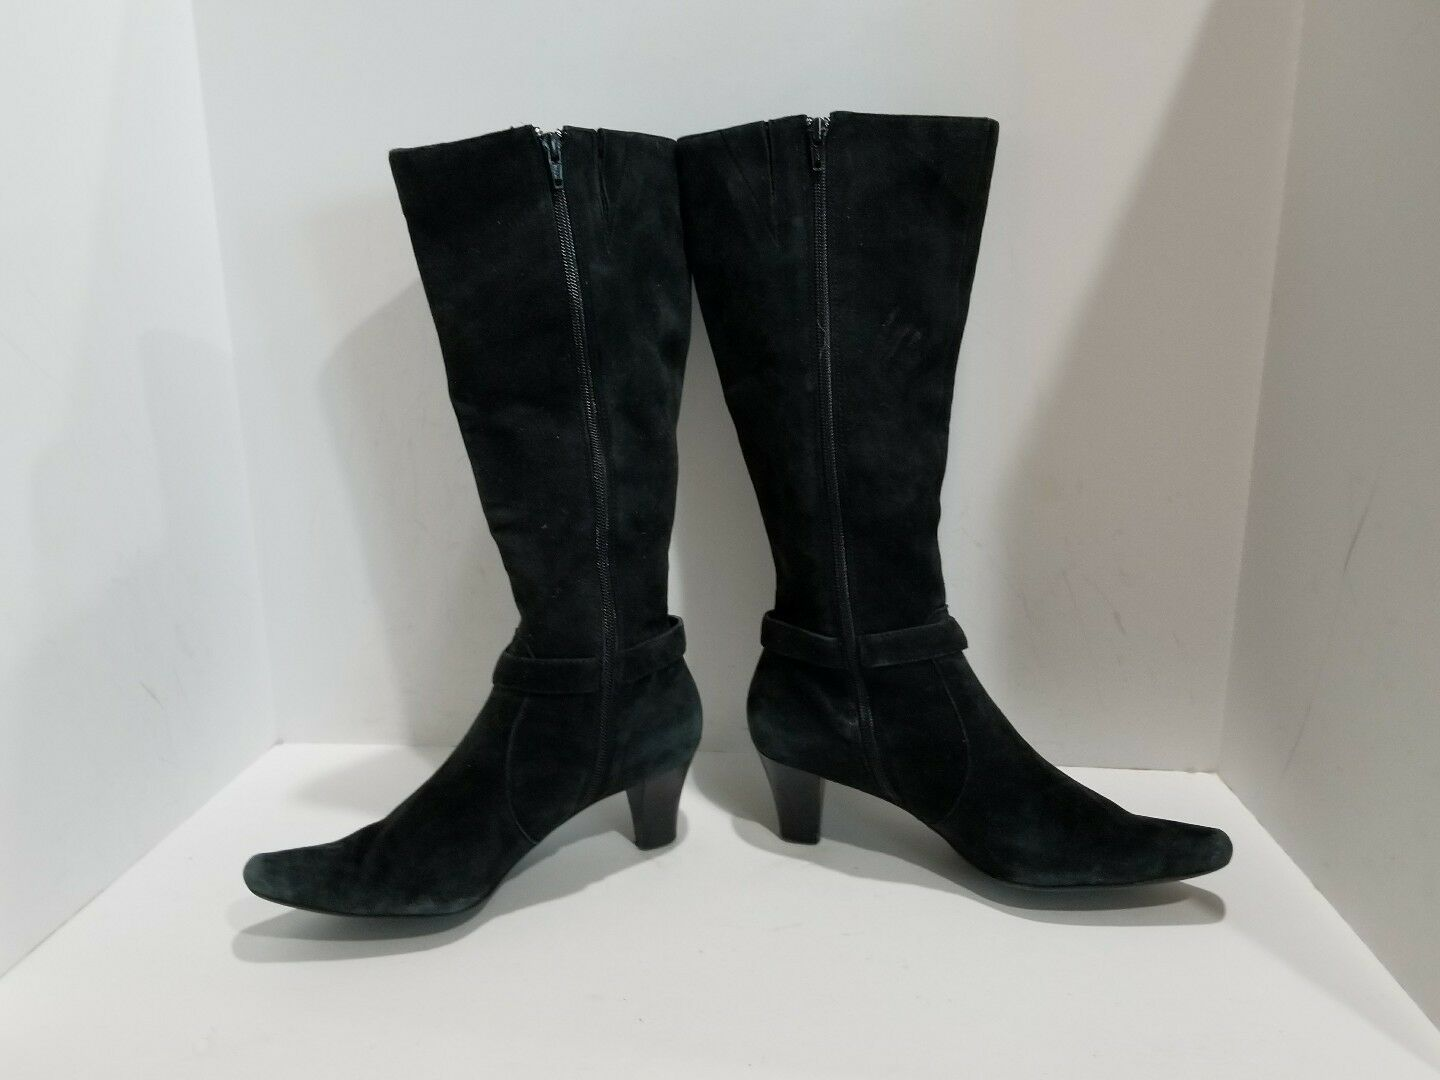 Anne Klein Womens Black Suede Knee High Boots Size 7.5 M